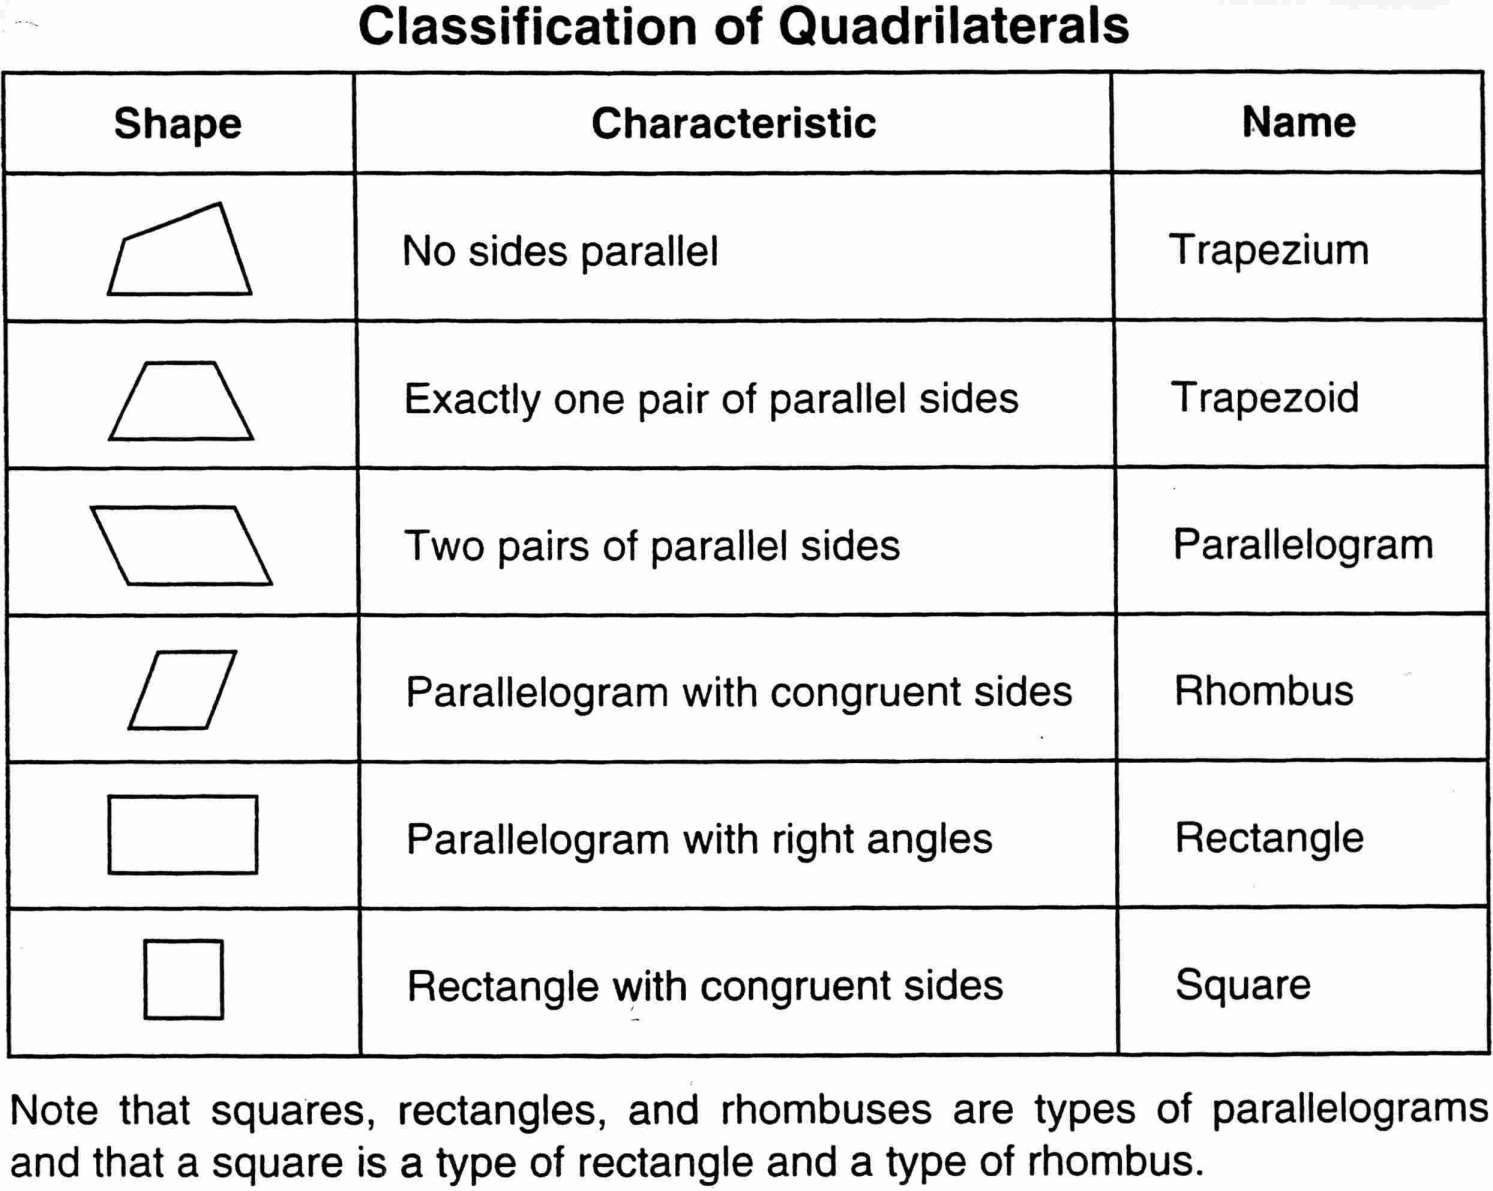 7 Classifying Quadrilaterals Worksheet 4th Grade